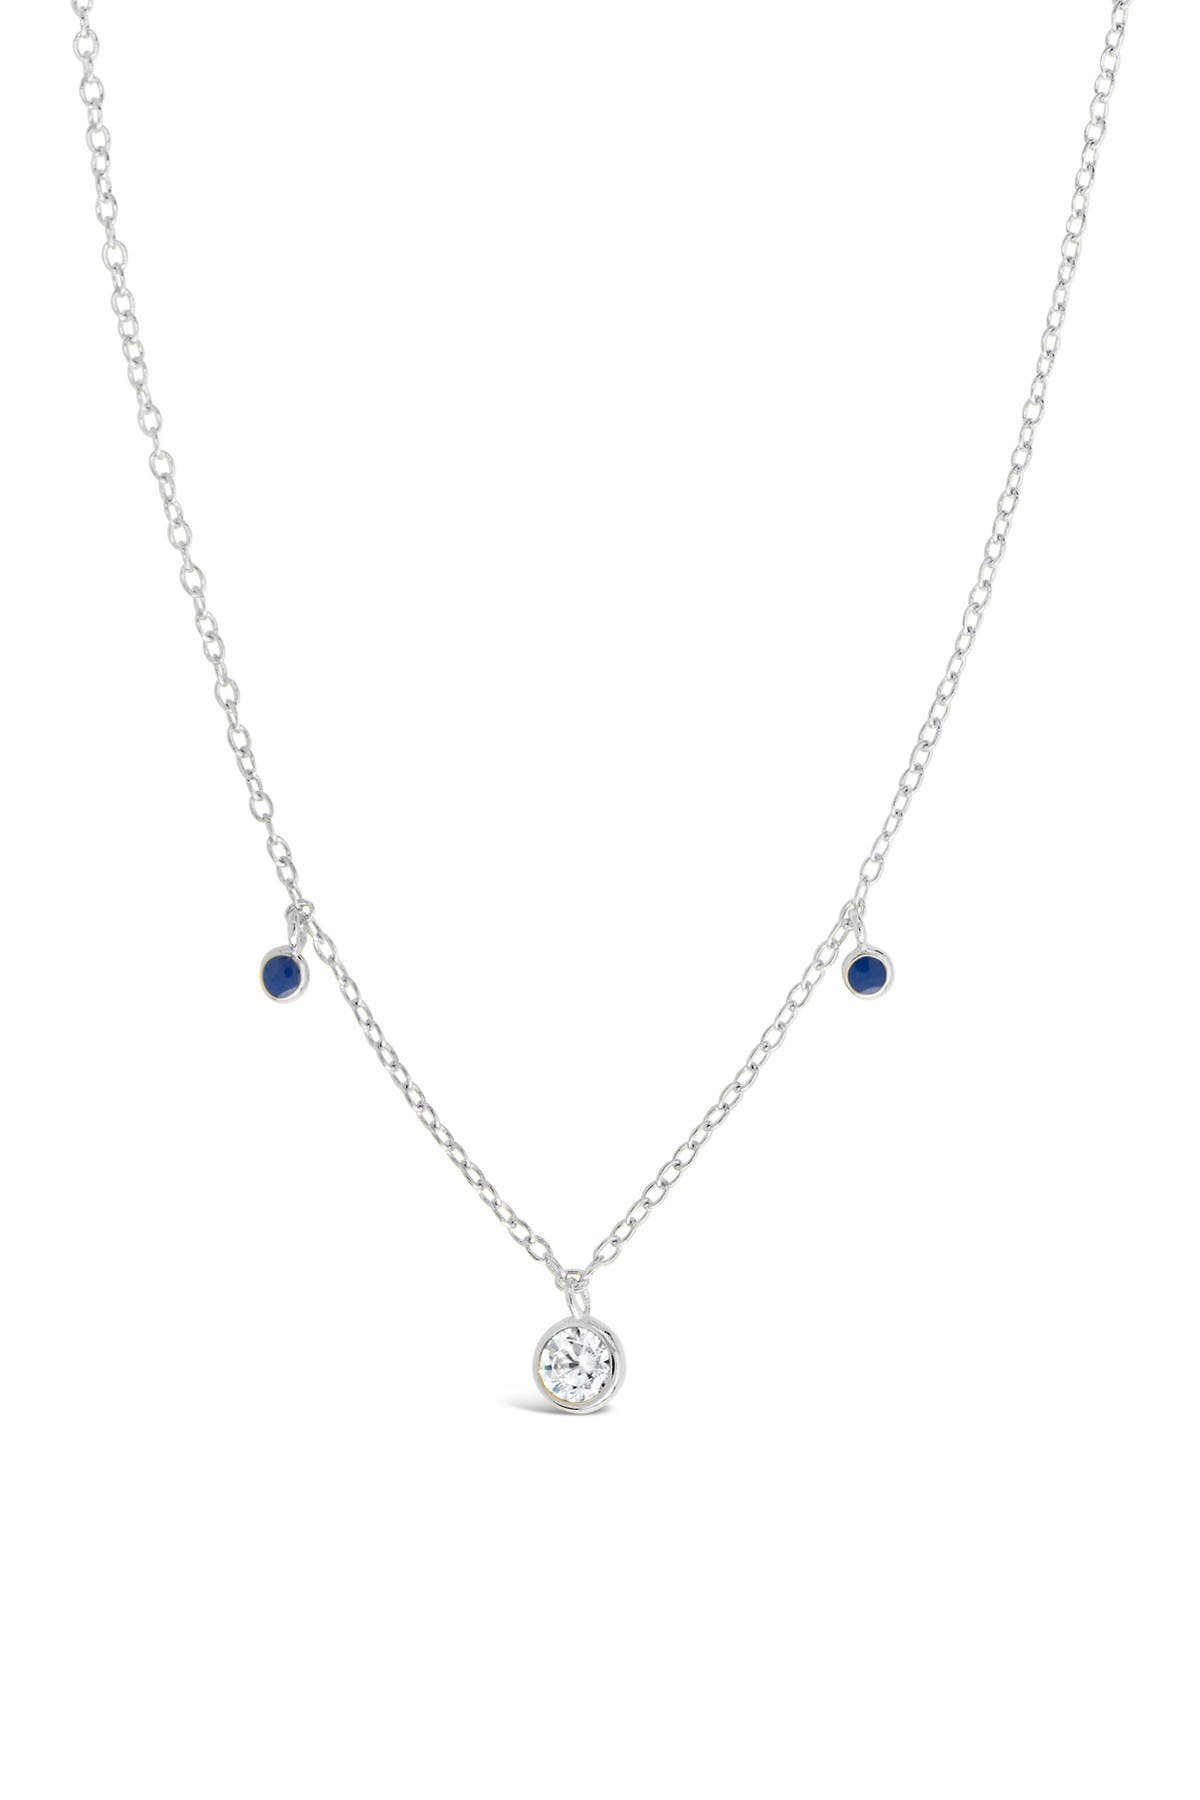 Image of Sterling Forever Sterling Silver Blue Enamel & CZ Charm Necklace